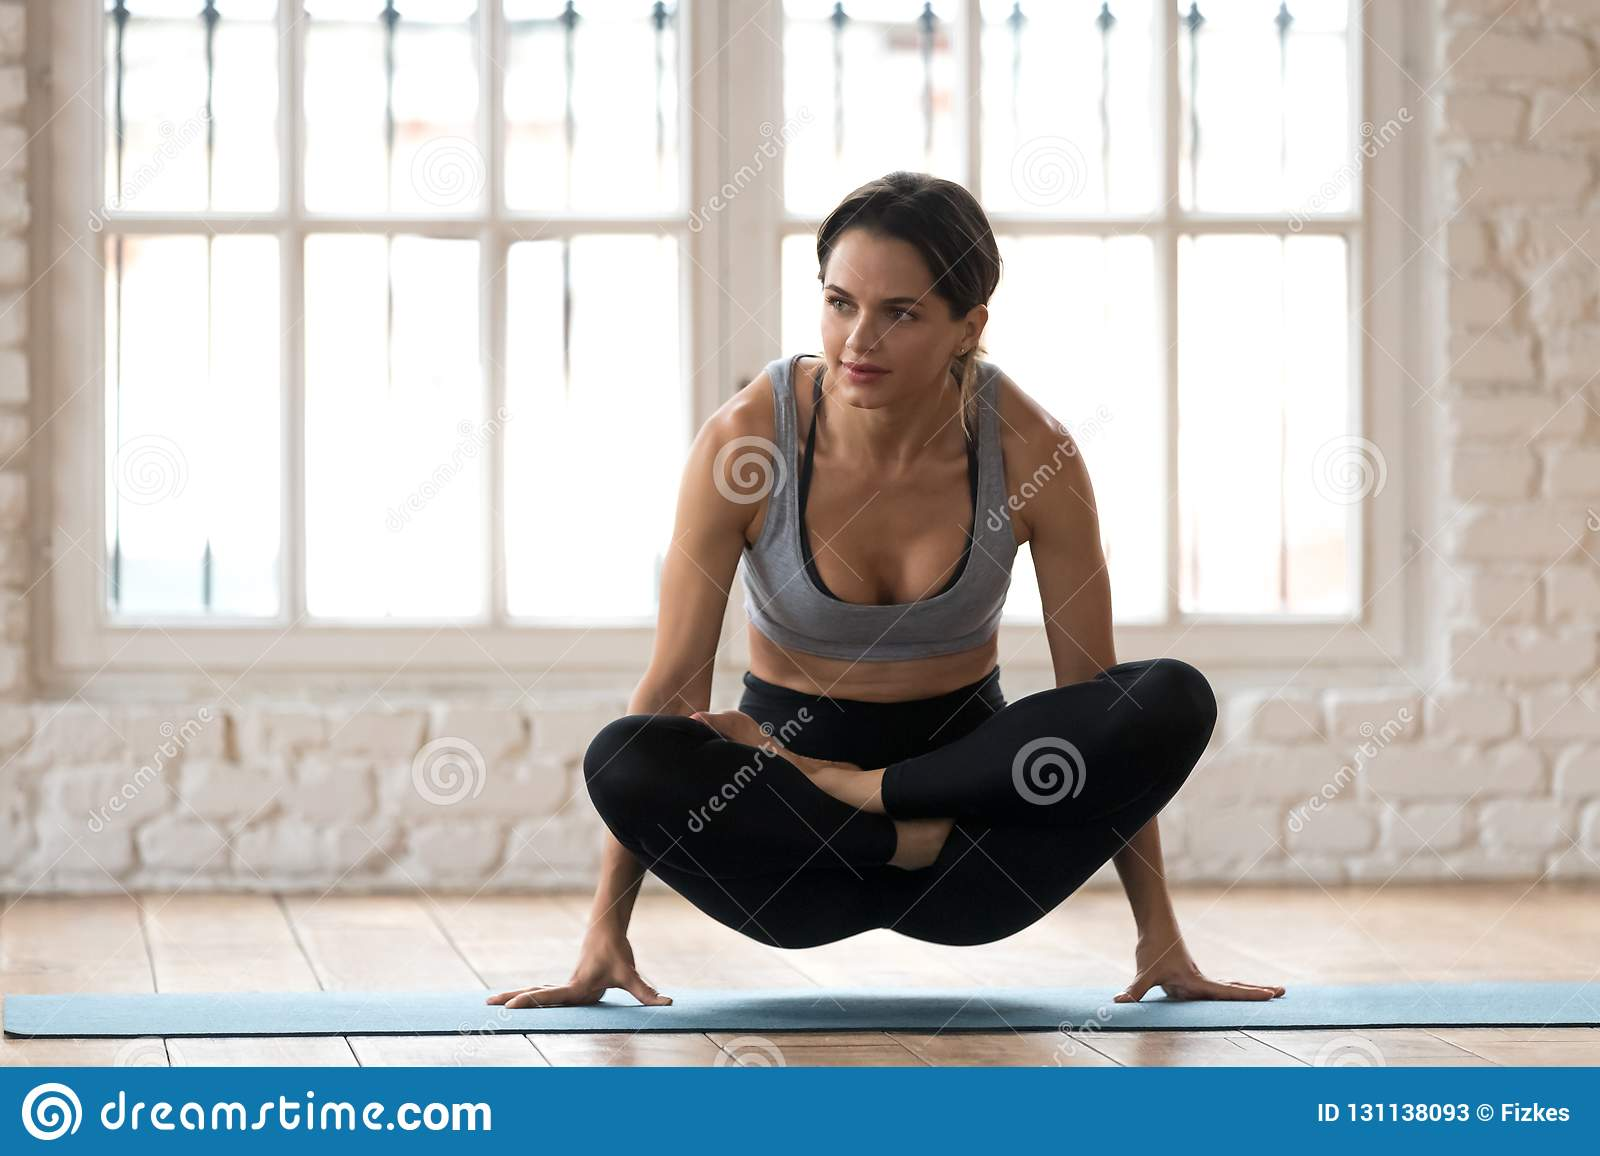 ce2666a57b Young sporty attractive woman practicing yoga, doing Scale exercise,  Tolasana pose, working out, wearing sportswear, black pants and top, indoor  full length ...